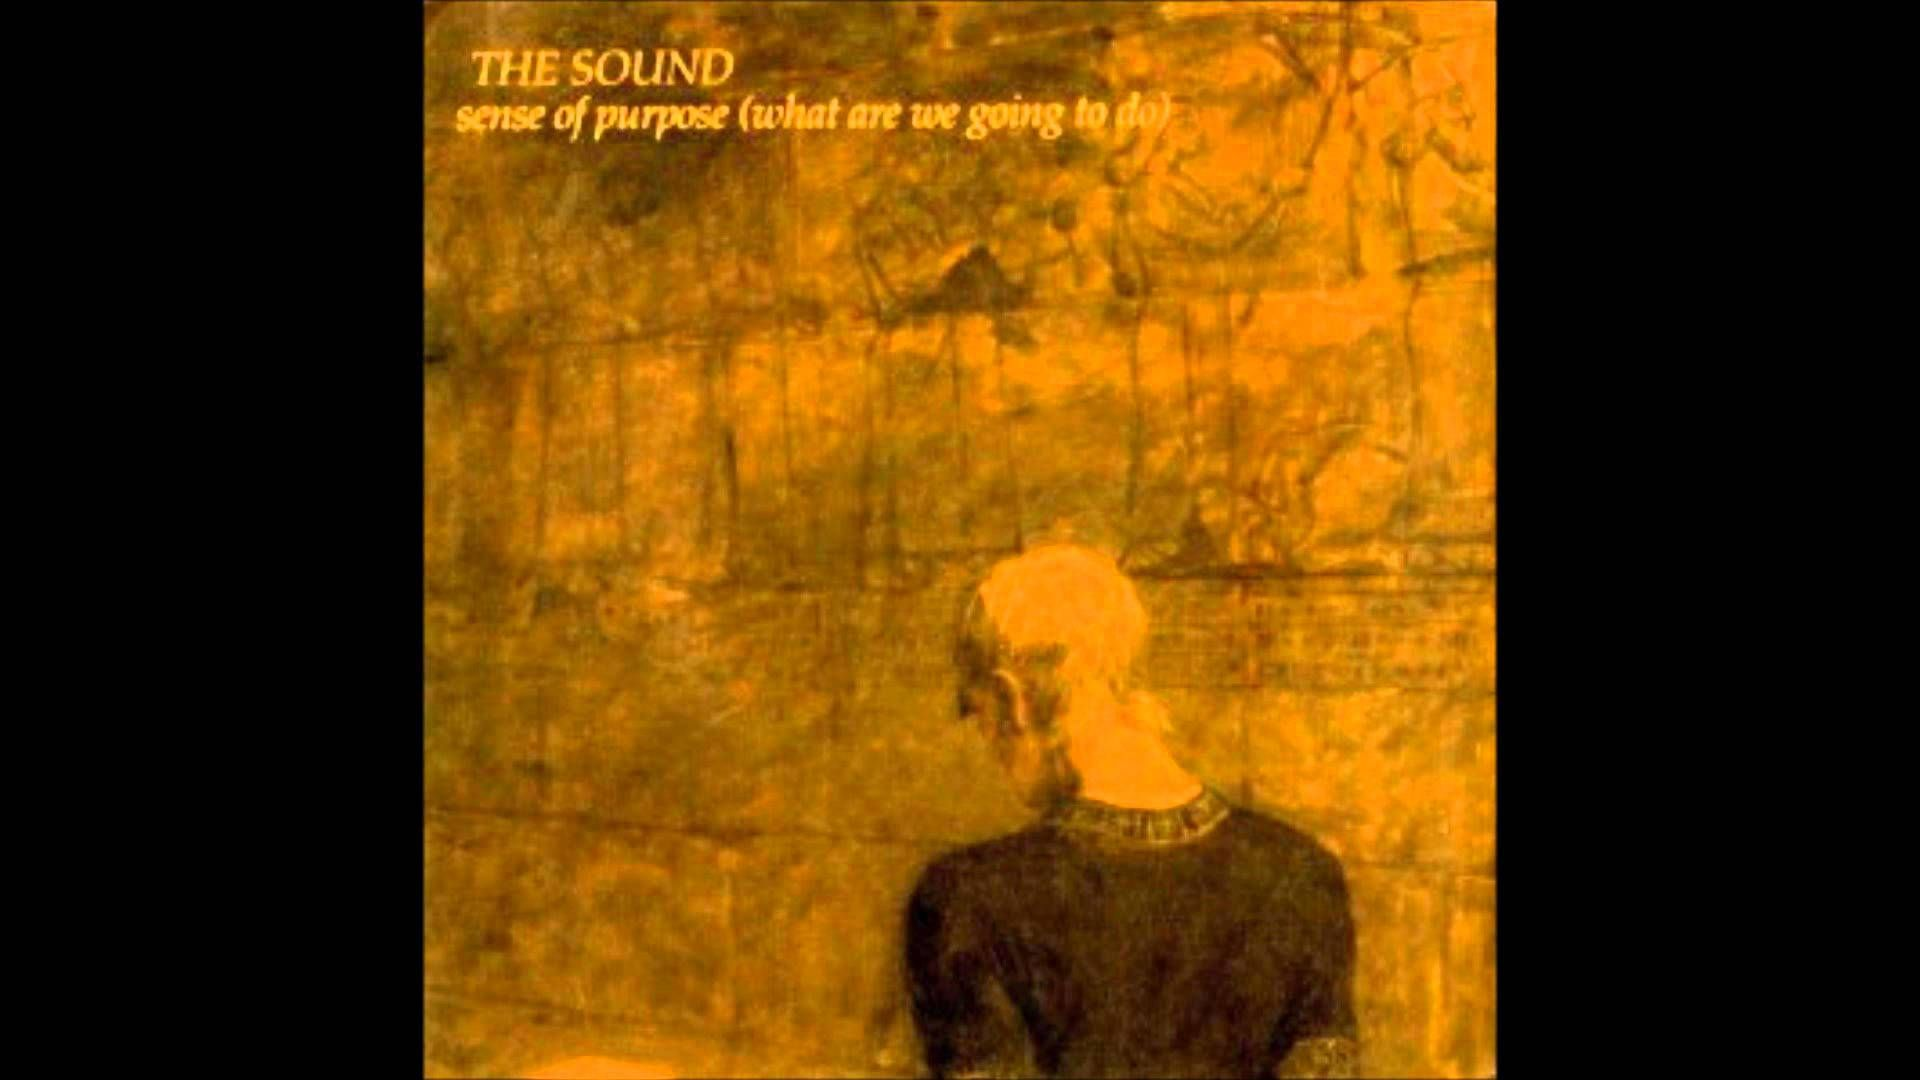 Beauty Above All,#classics,#Rock #Classics,Songs That Saved Your Life,#Sound,#Soundklassiker The #Sound – Sense Of Purpose… - http://sound.saar.city/?p=12425